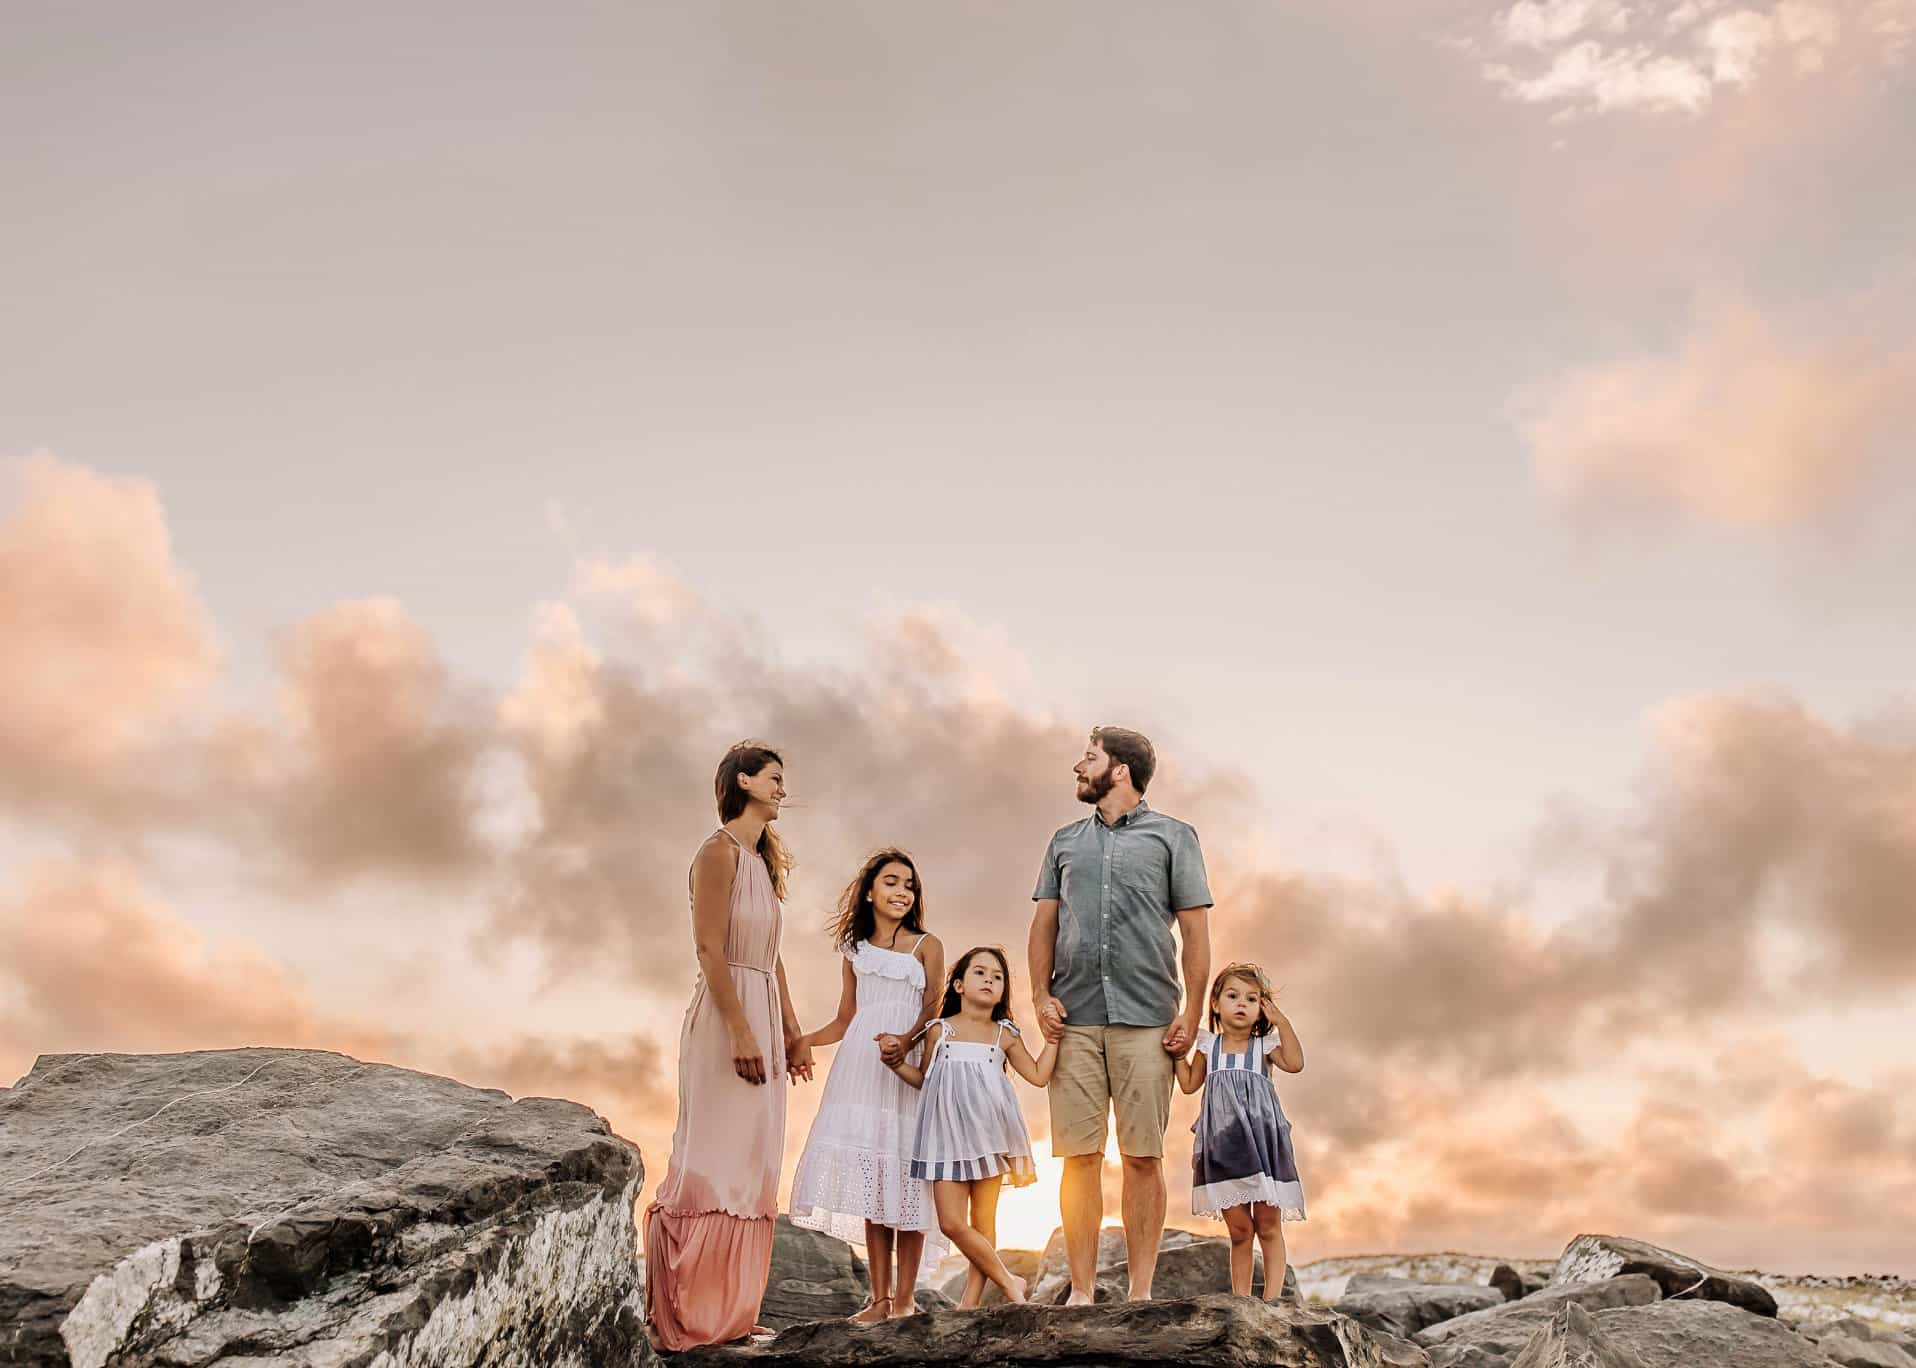 The 55 Most Fascinating Family Photos of 2019 - Seriously!